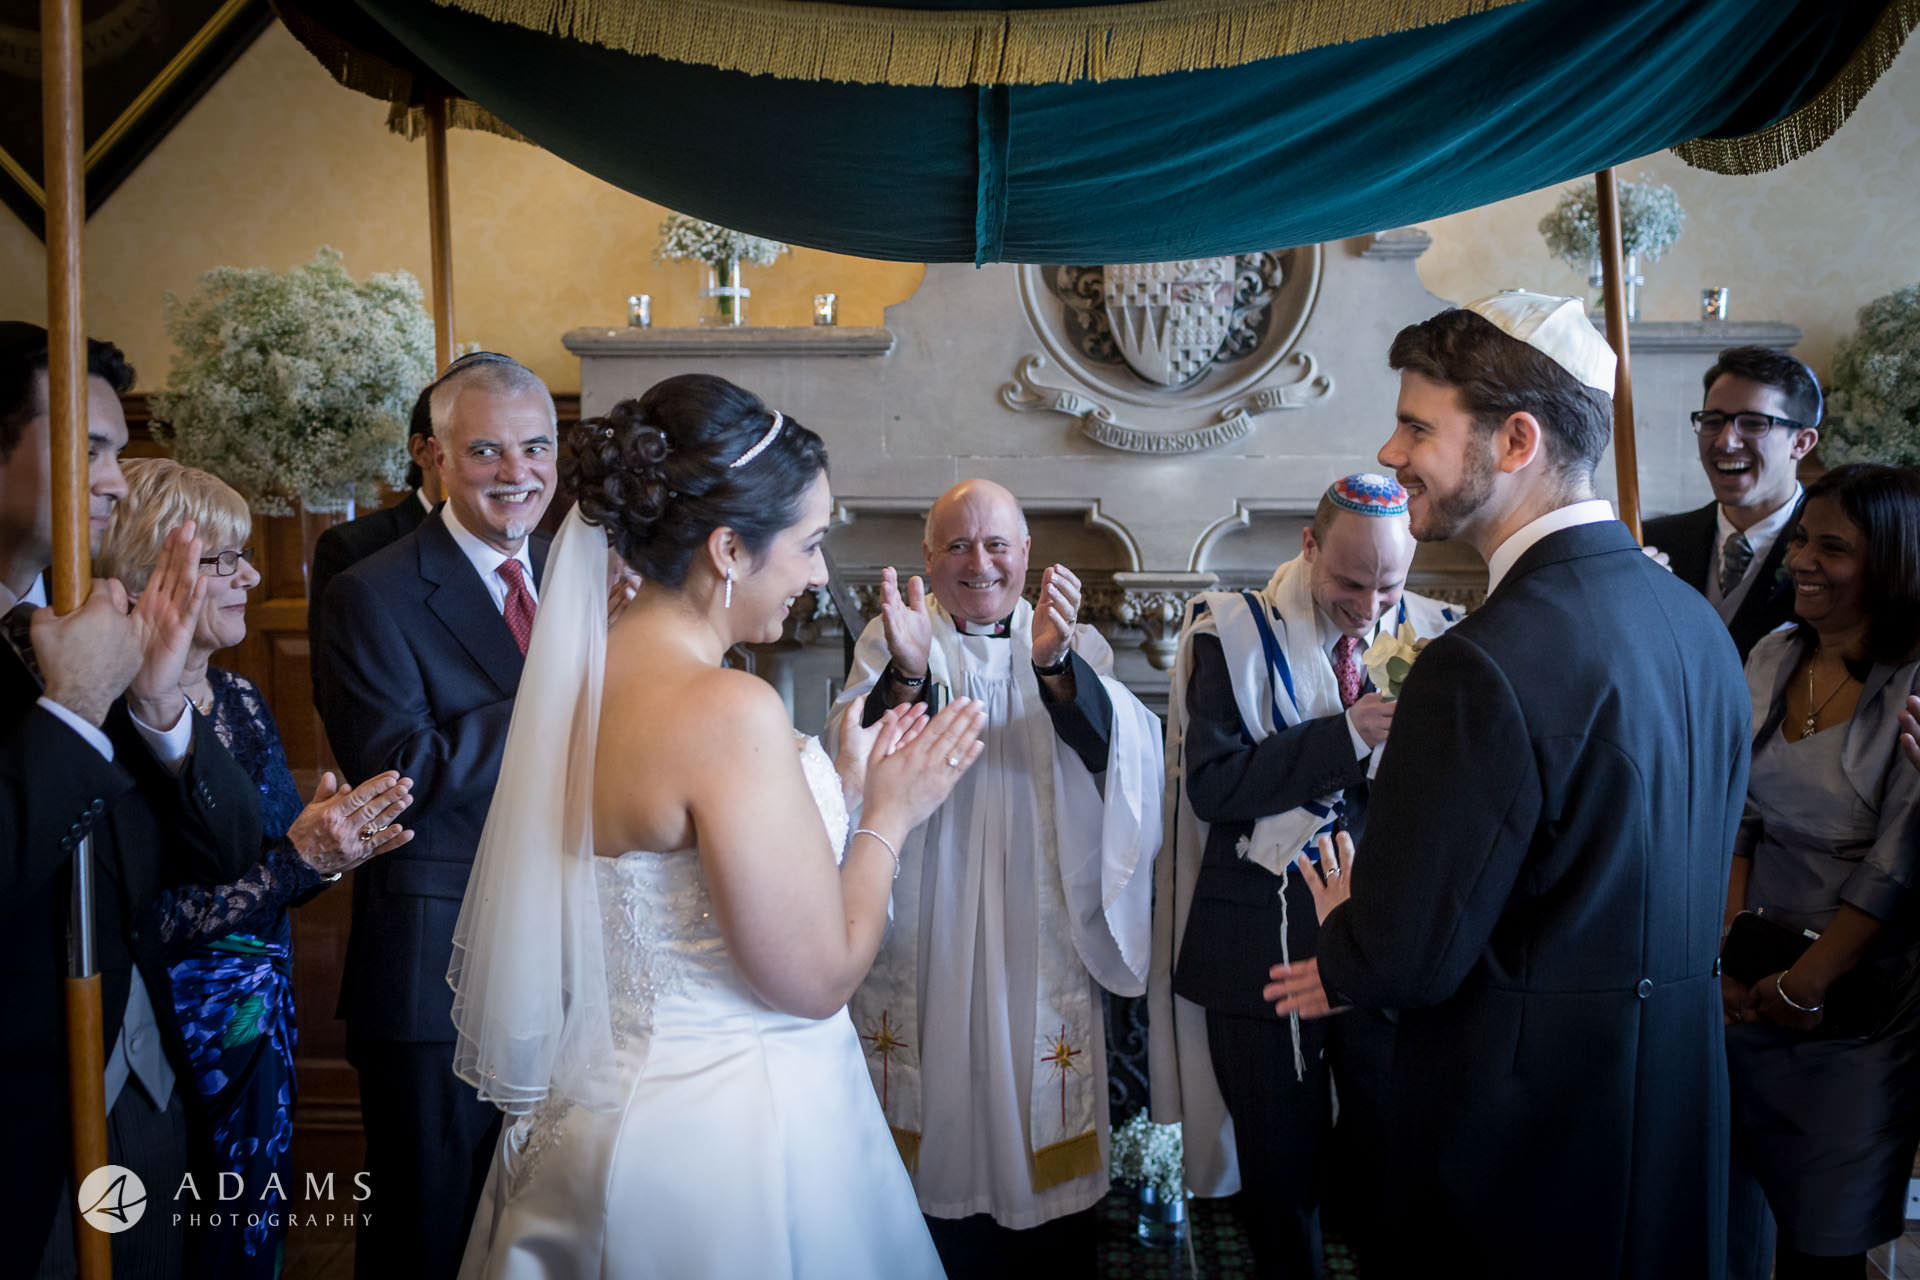 London wedding photographer interfaith wedding ceremony of Christian and Jew by wedding photographer London